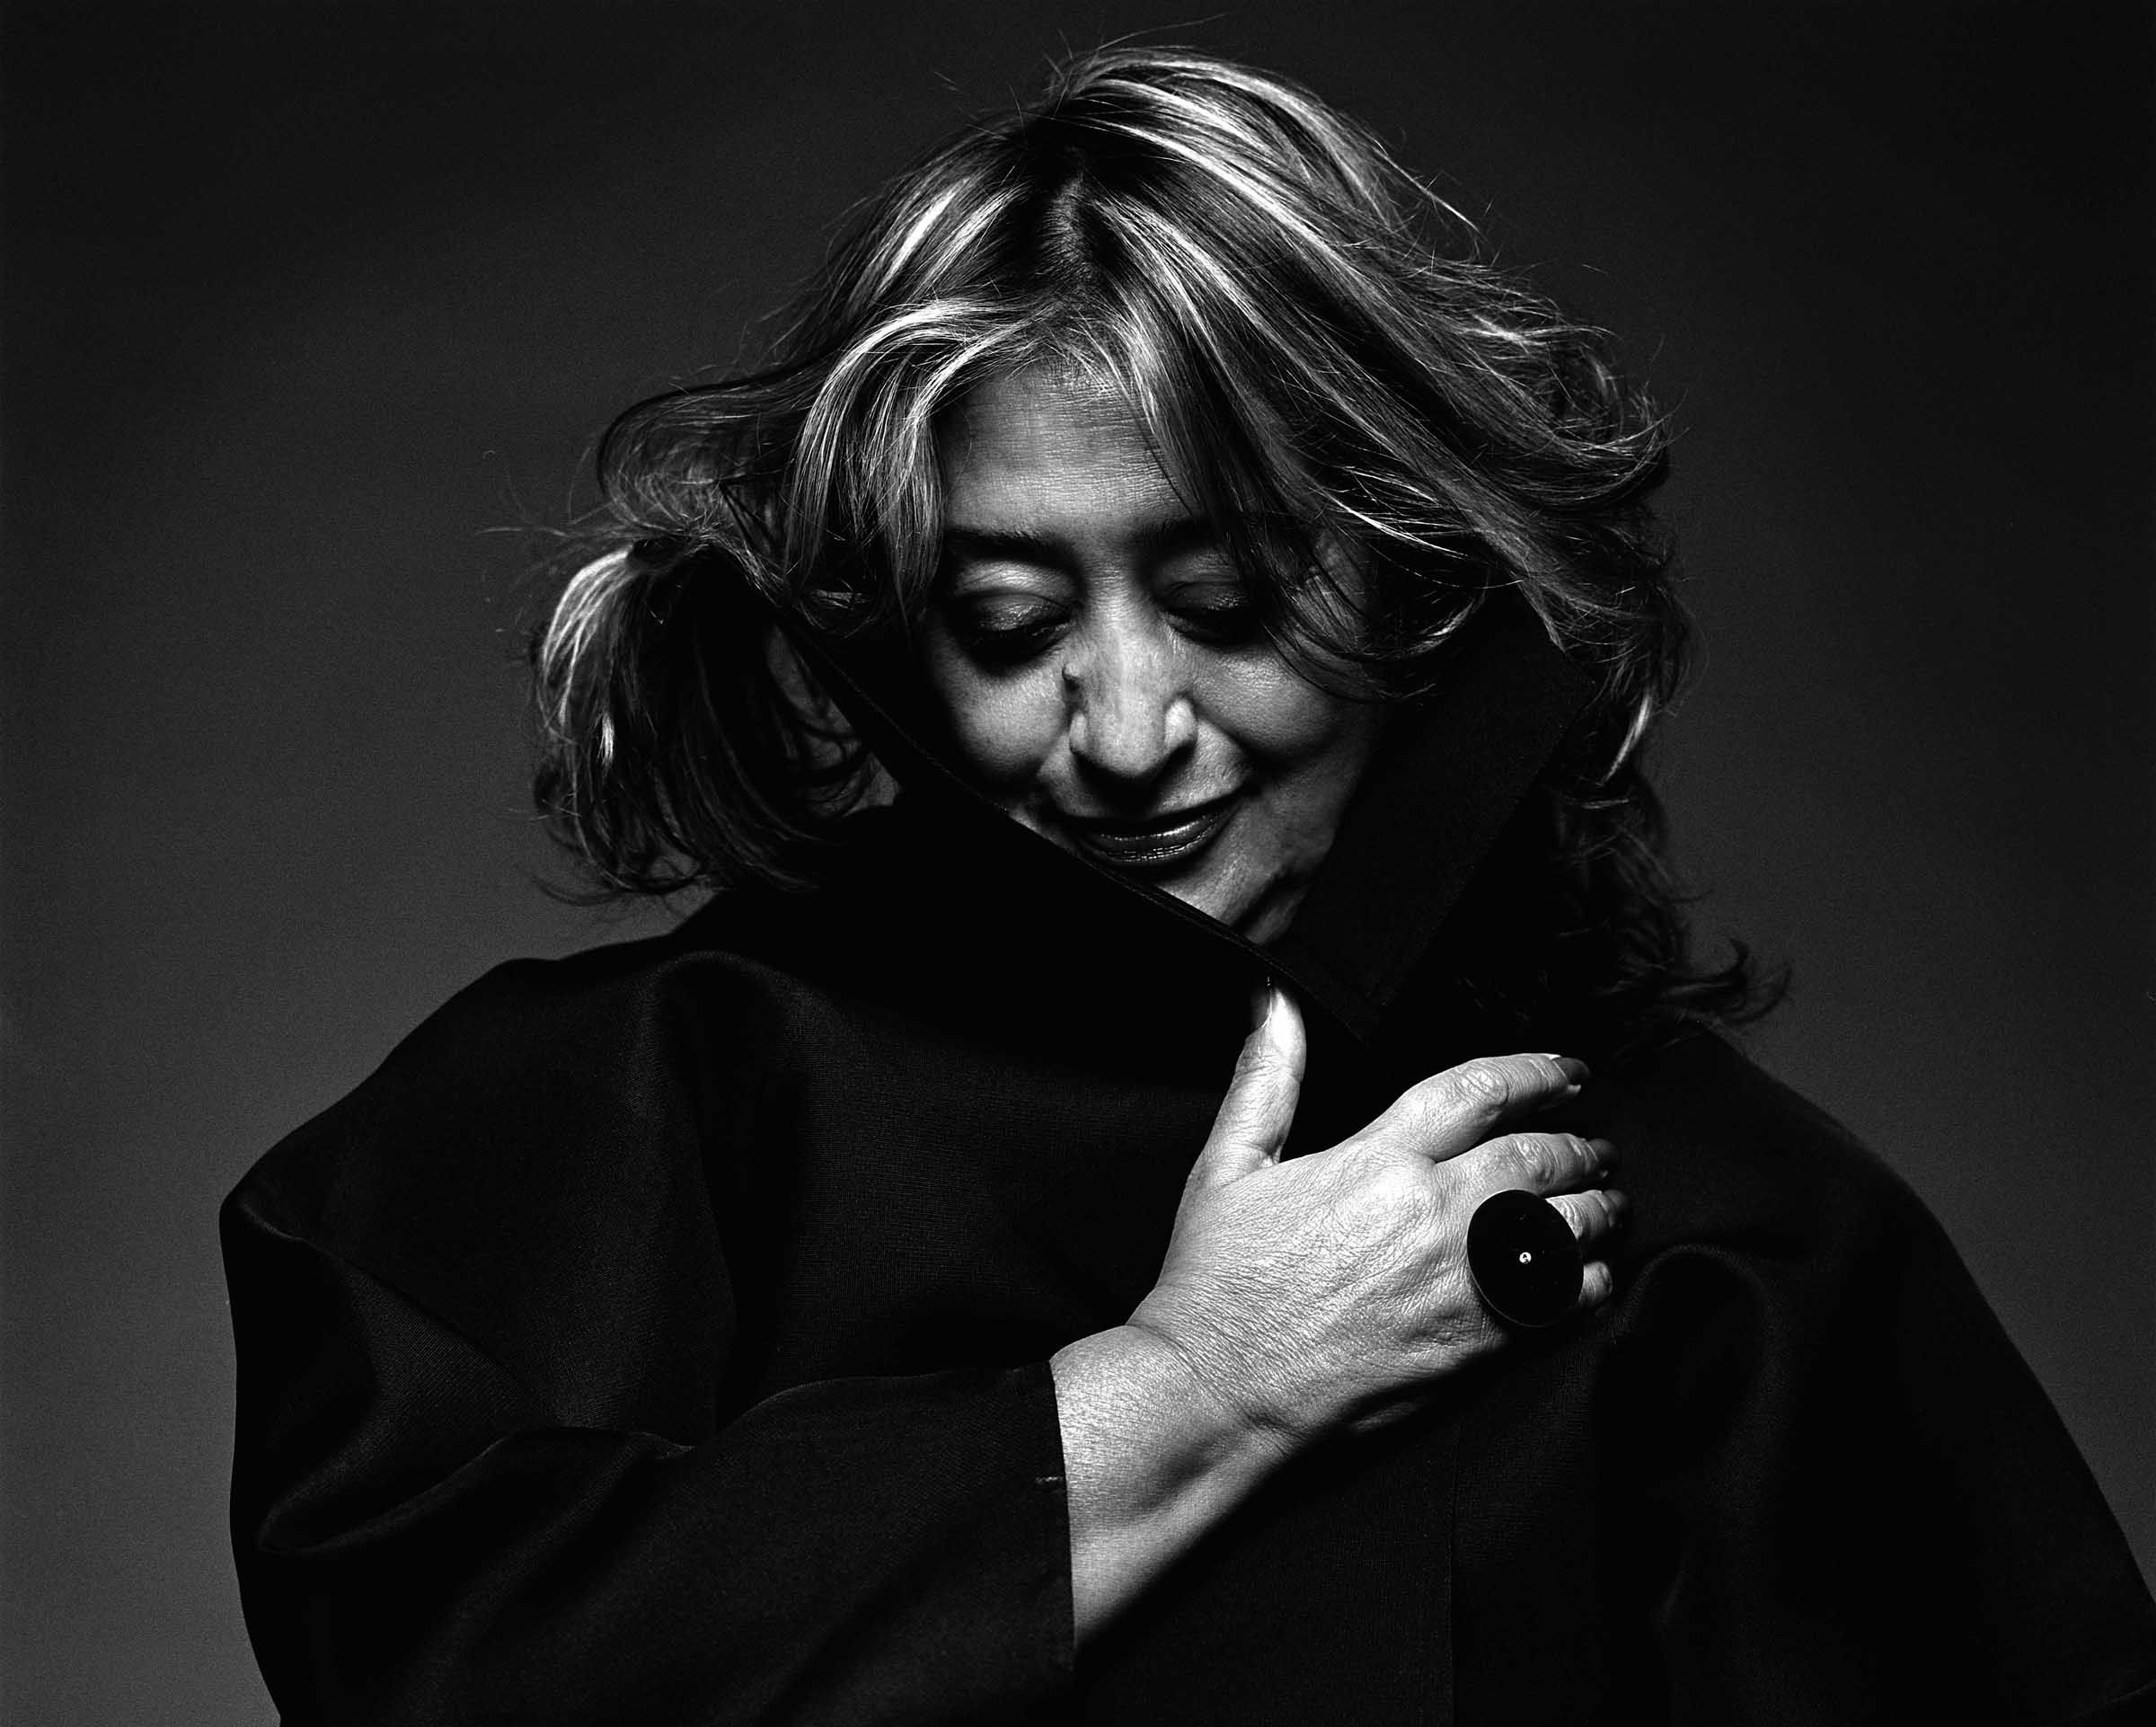 """First women to win the Pritzer Prize, Zaha Hadid is recognized worldwide by her distinctive and innovative architecture. Born in Iraq, the London based architectural designer creates powerful buildings easily recognizable by their fluid forms."""